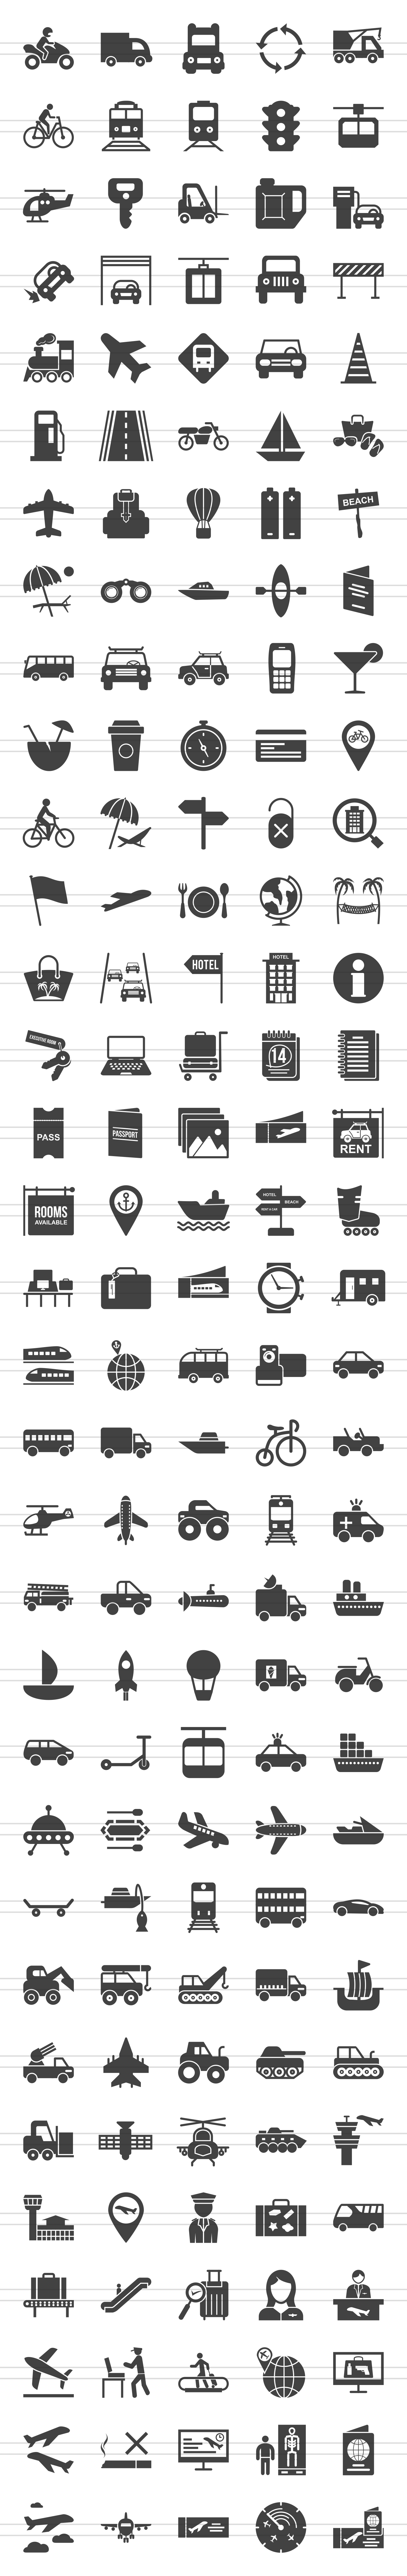 166 Transport Glyph Icons example image 2